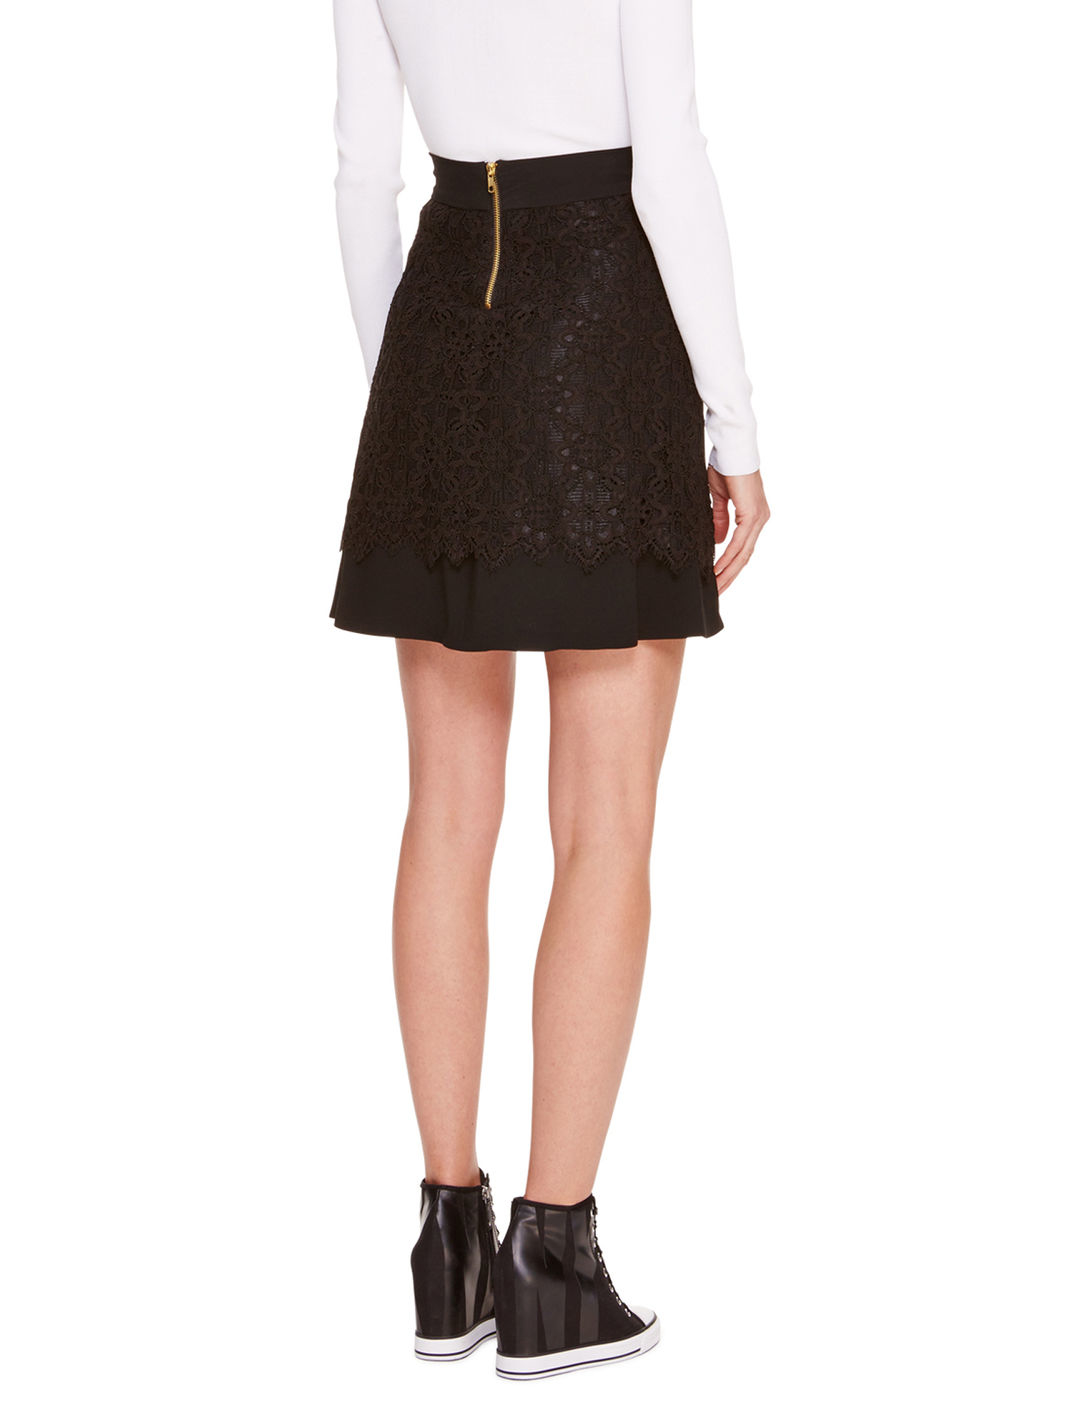 Dkny Lace Overlay A-line Skirt in Black | Lyst